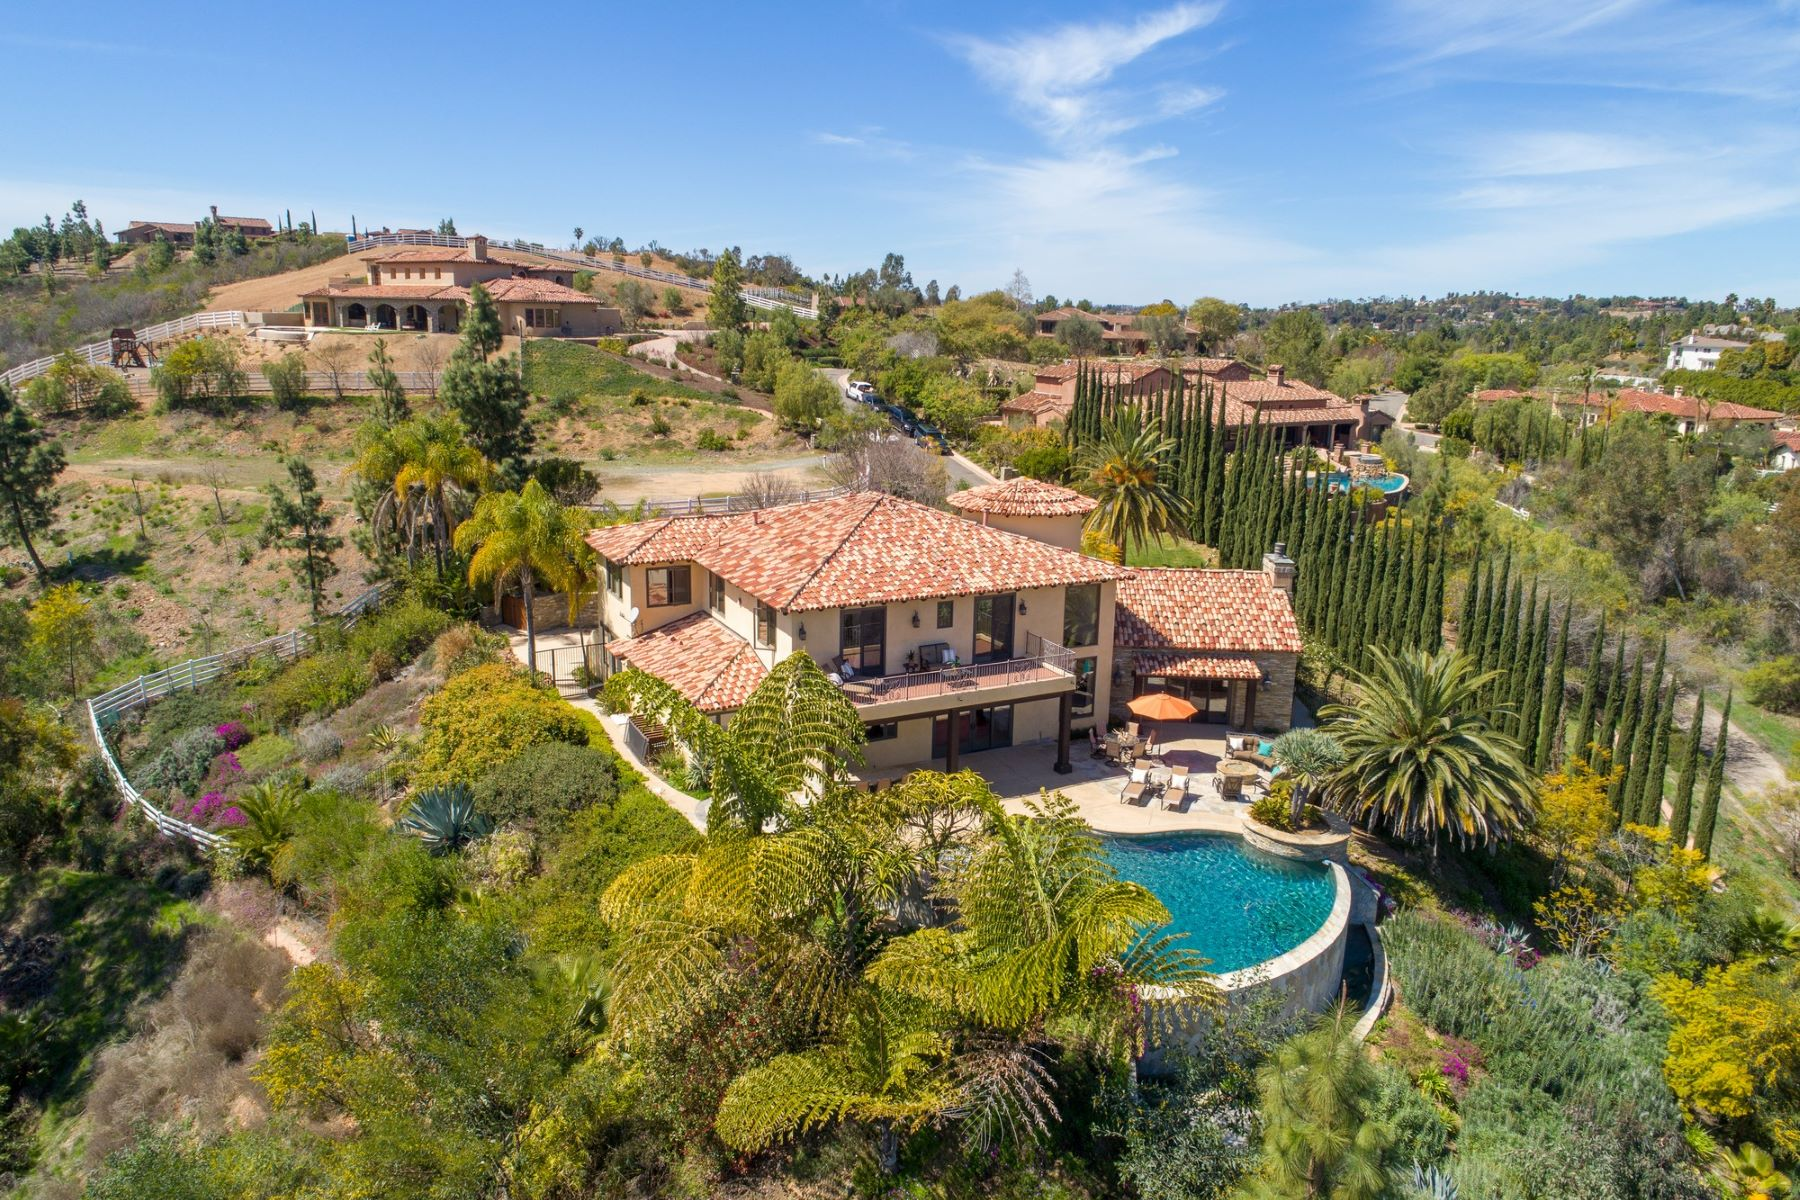 Single Family Home for Active at 3387 Wildflower Valley Drive 3387 Wildflower Valley Drive Encinitas, California 92024 United States